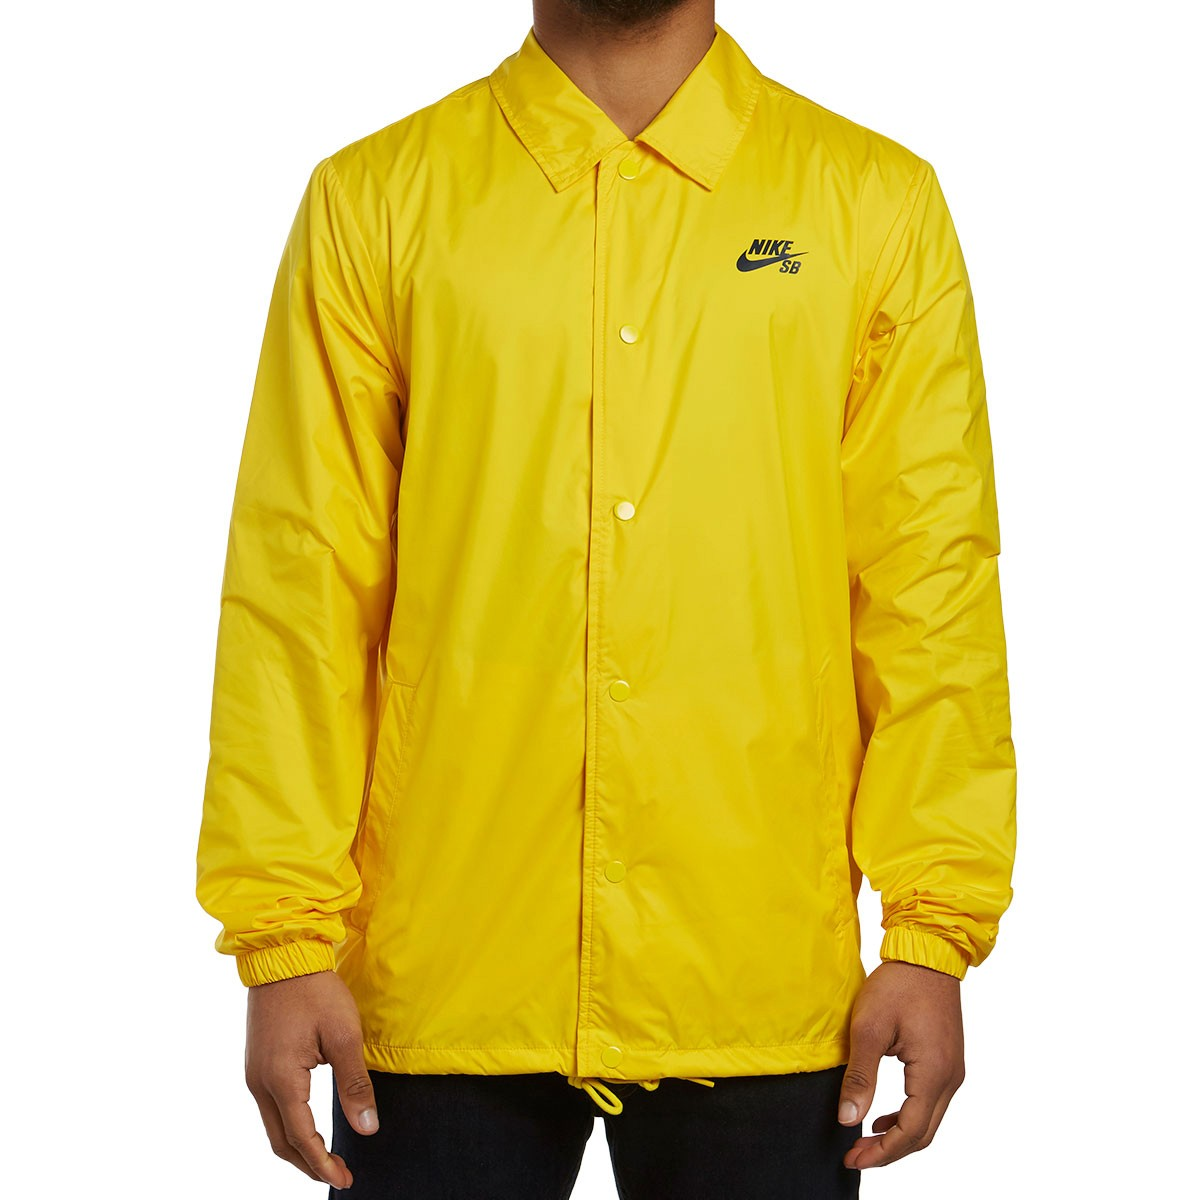 Nike SB Shield Coaches Jacket - Tour Yellow Obsidian 6efd627d7